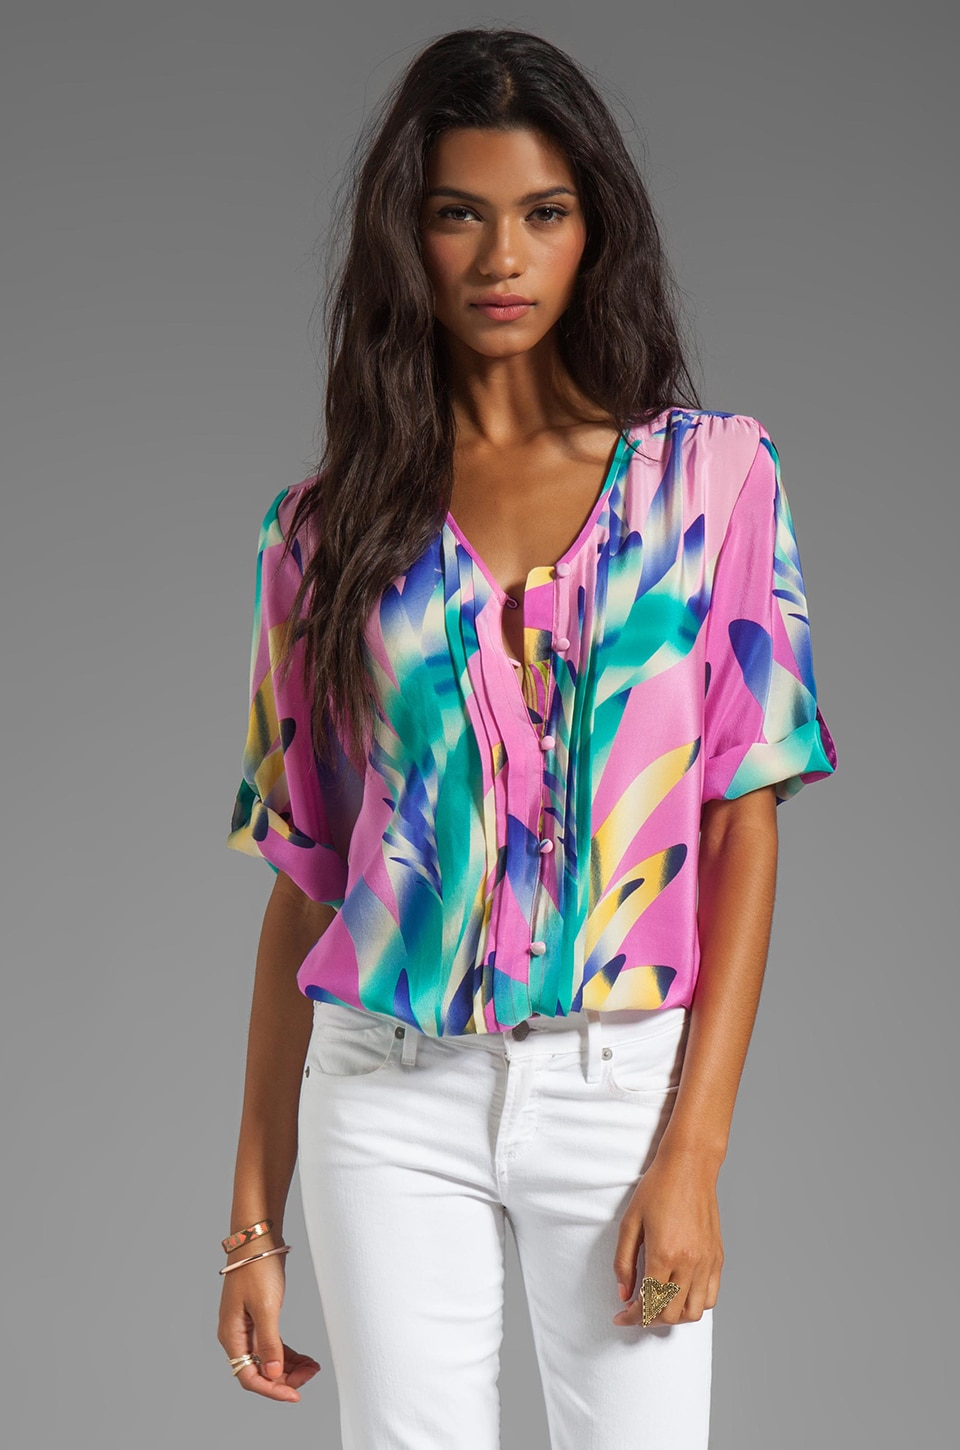 Yumi Kim Lizzie Top in Pink Feather